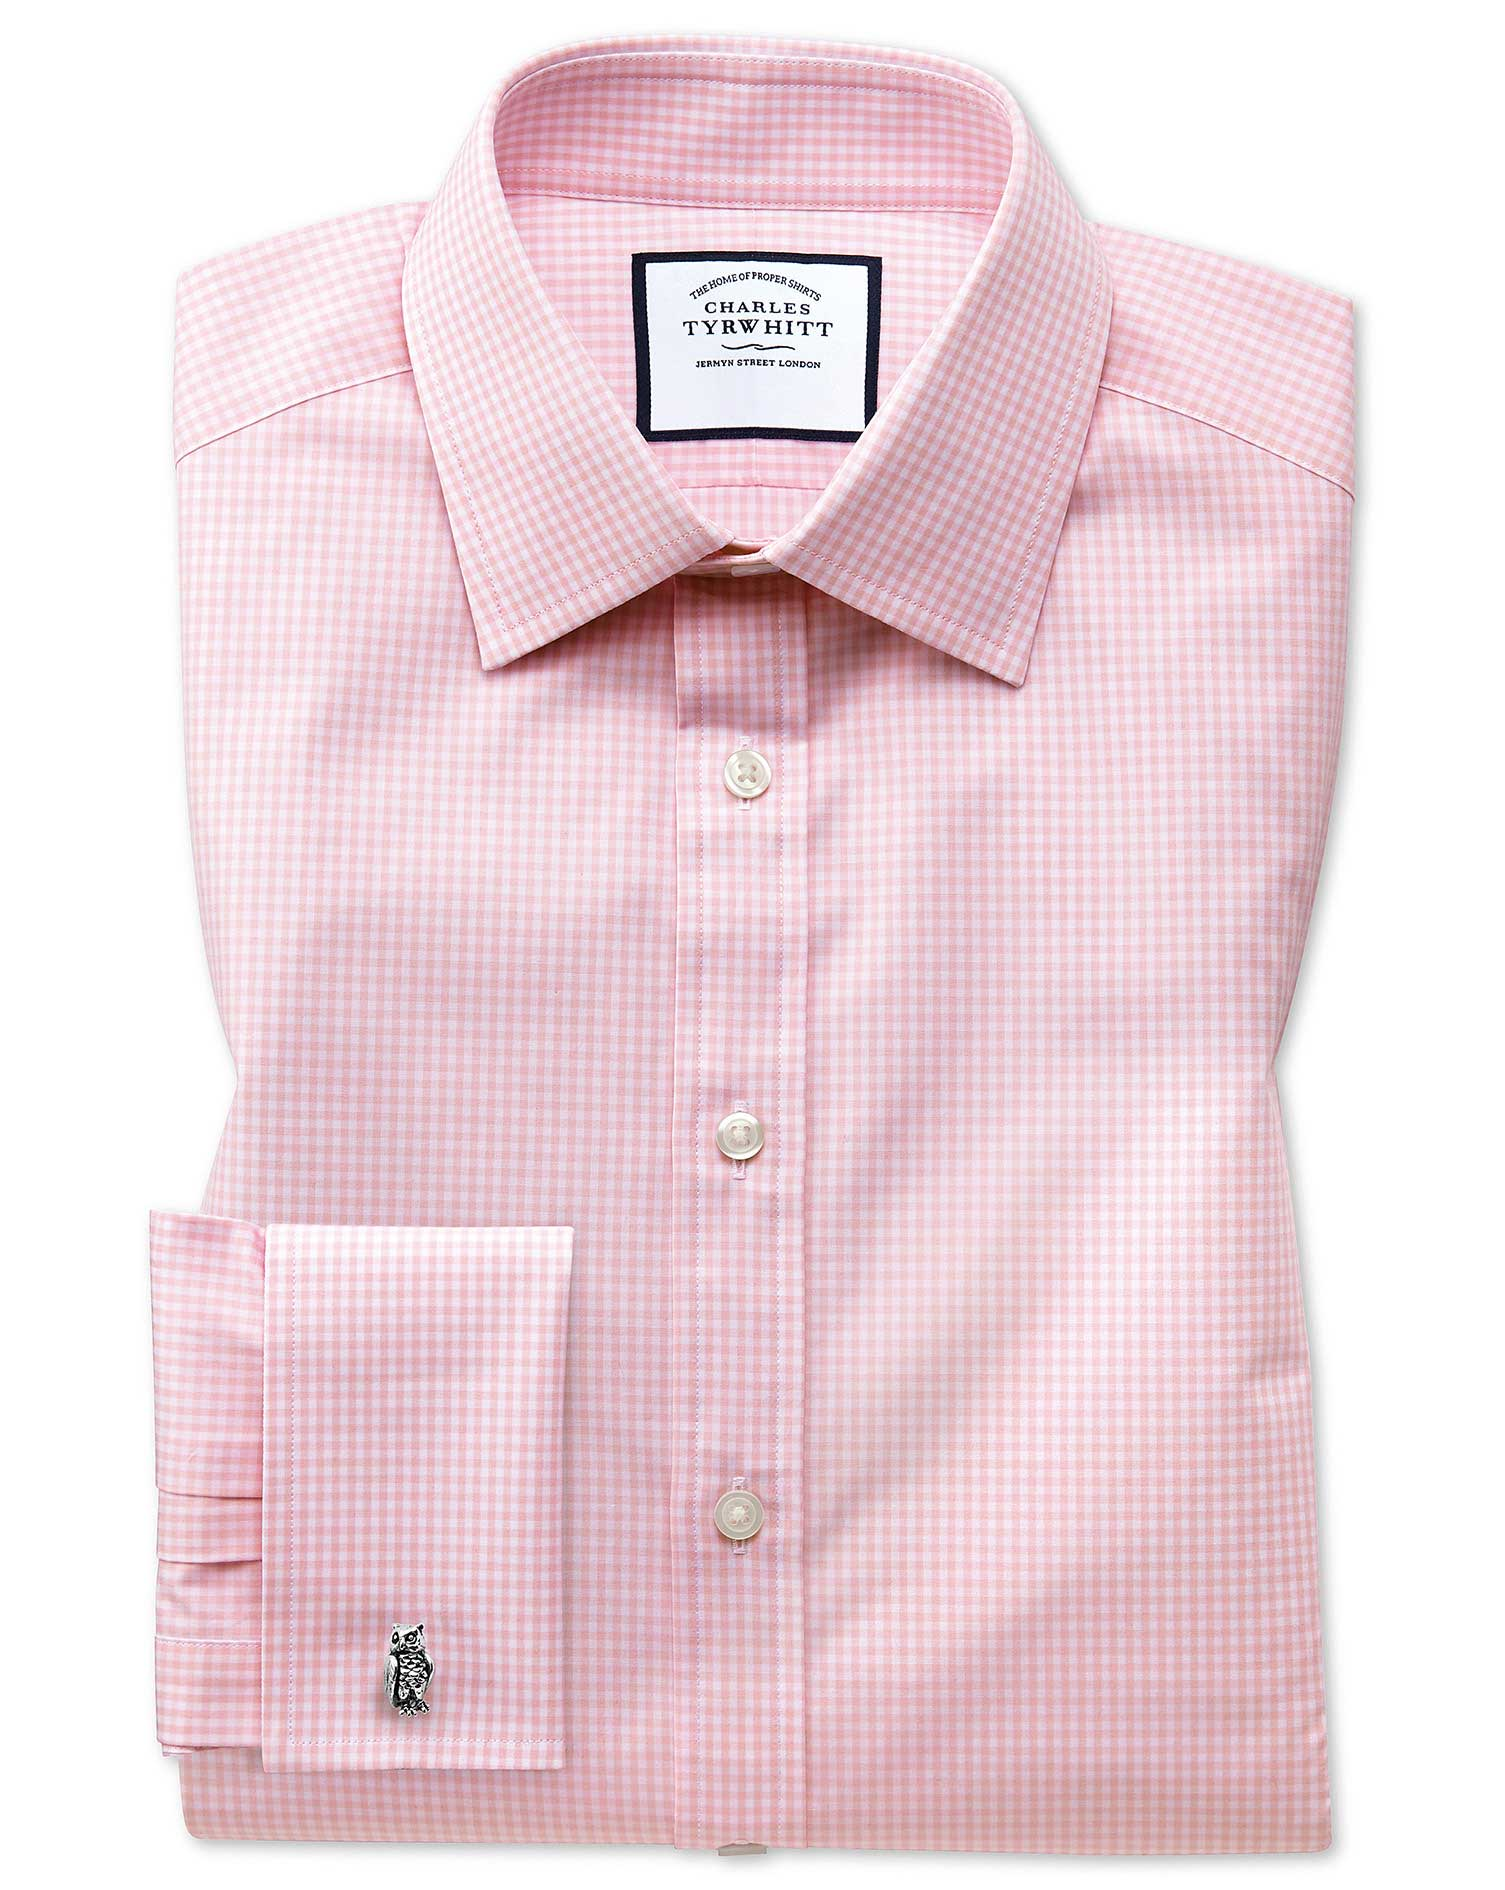 Slim Fit Small Gingham Light Pink Cotton Formal Shirt Double Cuff Size 17/34 by Charles Tyrwhitt